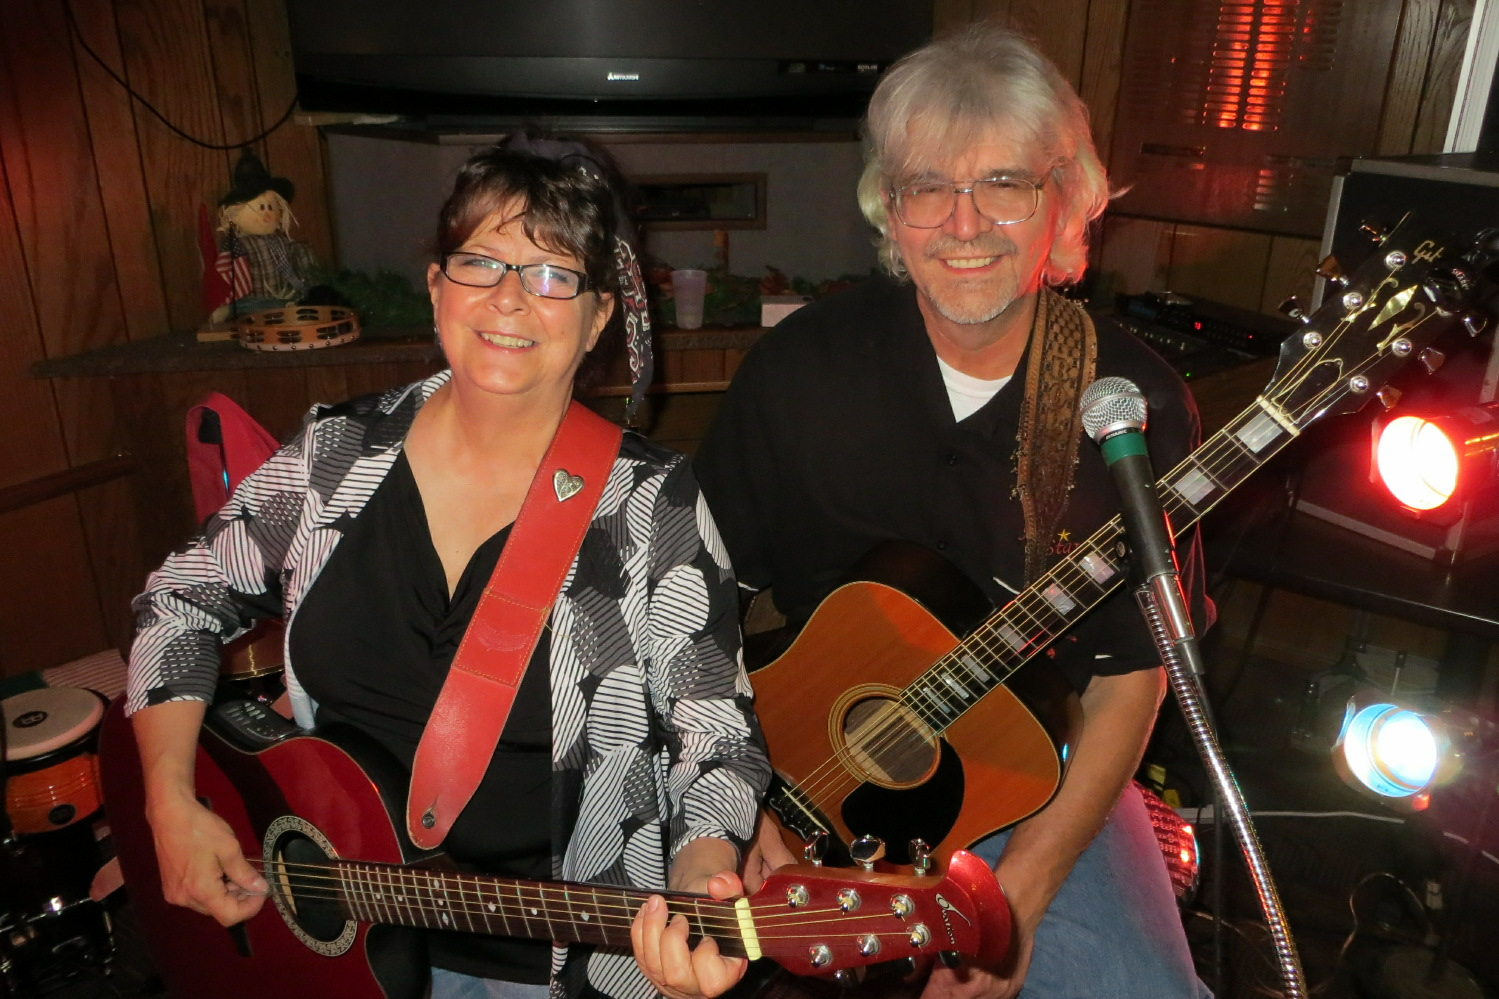 Northeast Nebraska Musicians Bob n' Judi Letheby from Norfolk, NE